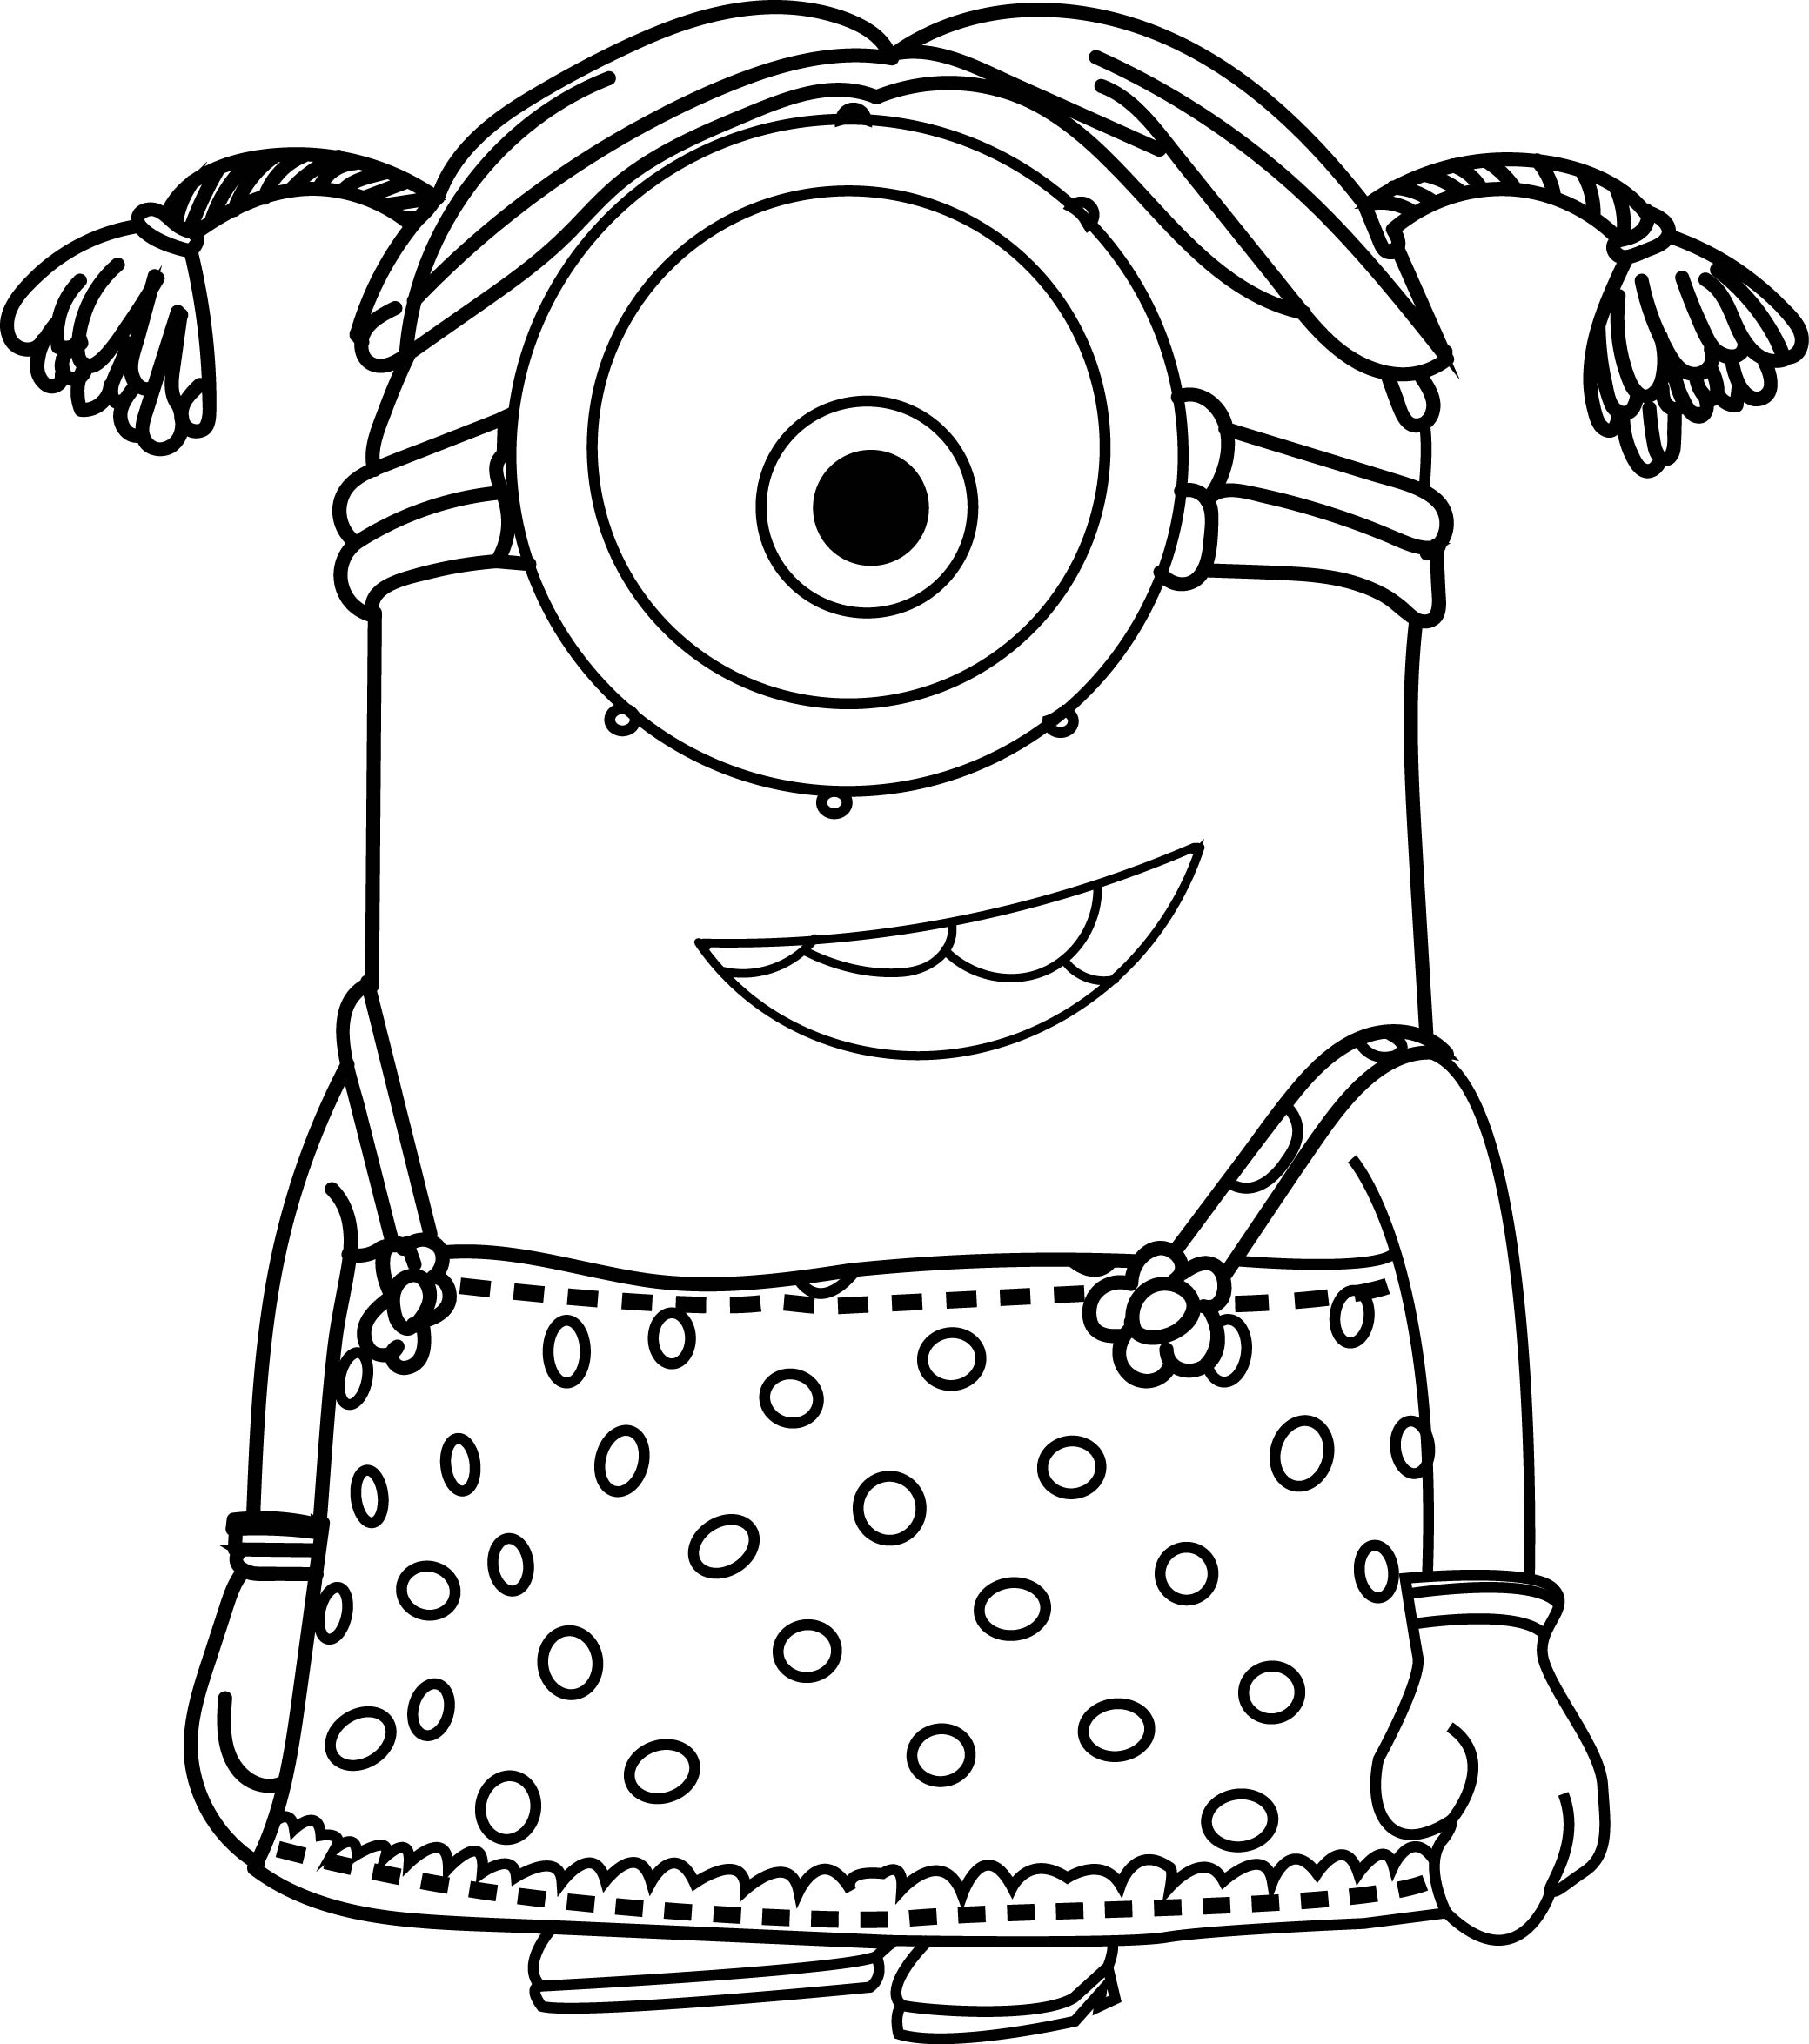 cartoons minions little girl coloring page wecoloringpage - Minion Coloring Pages